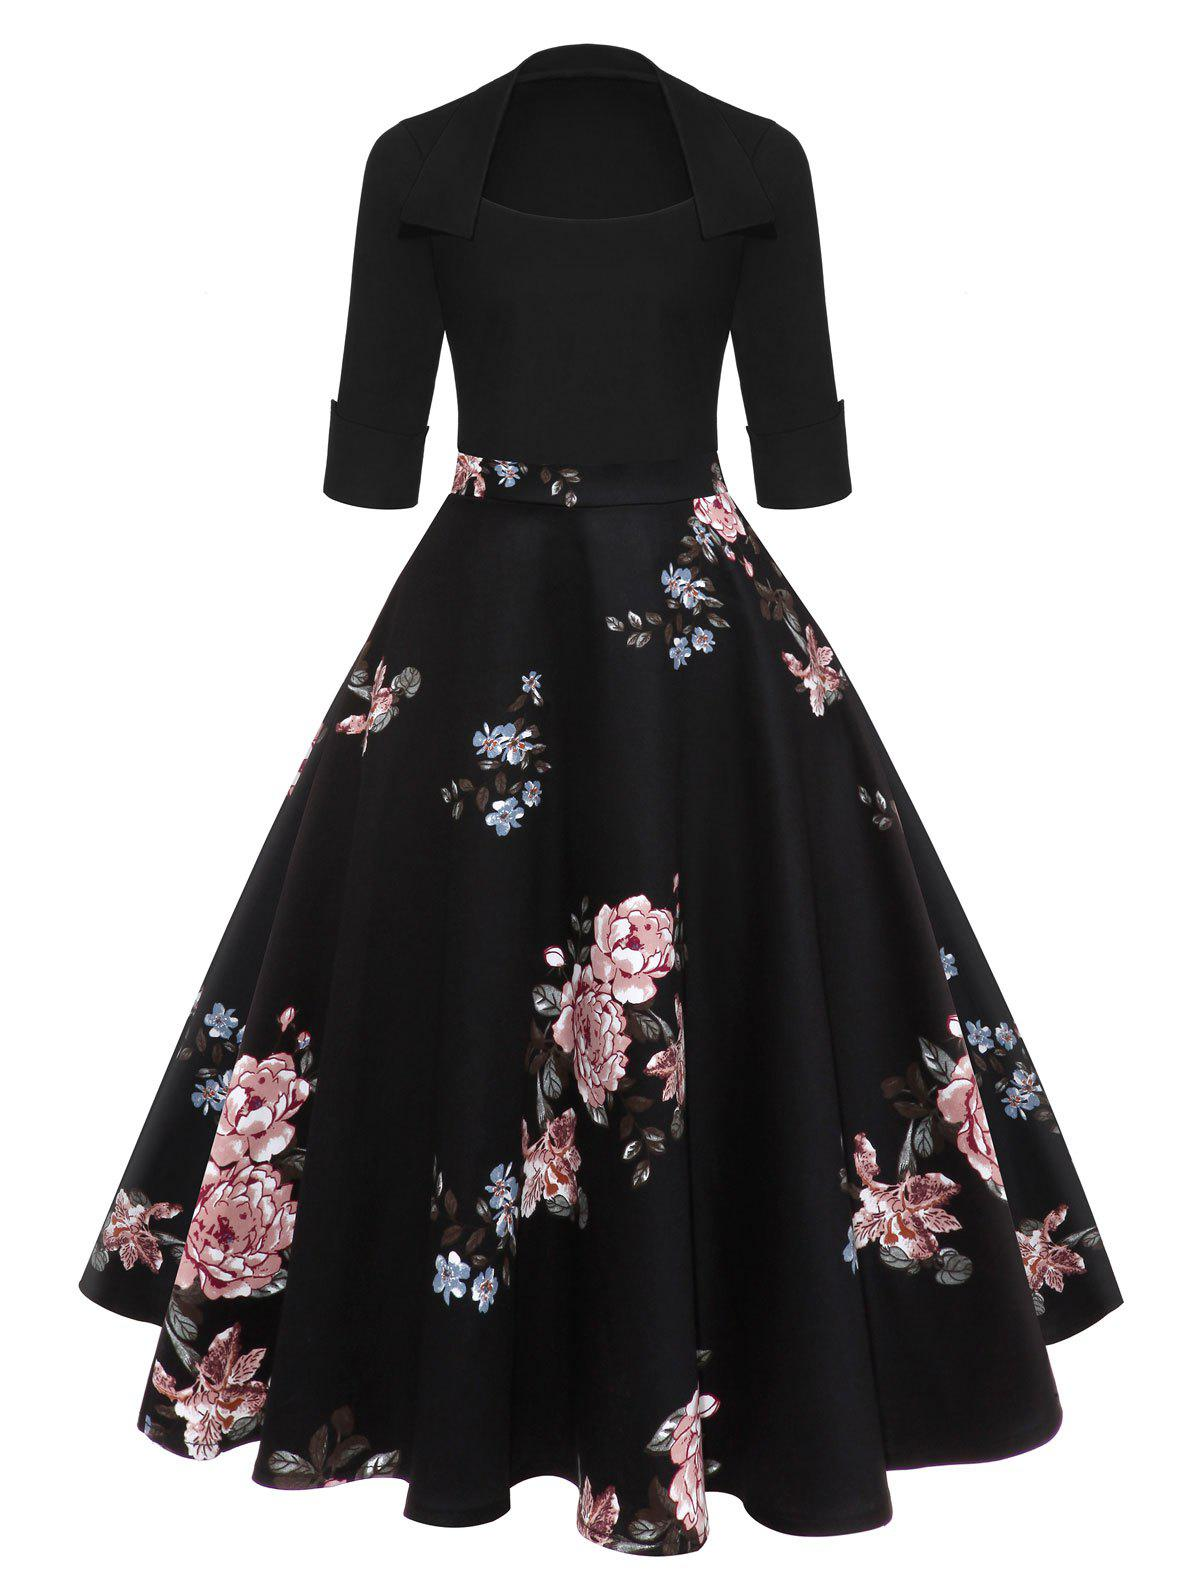 Vintage Floral Midi Flare DressWOMEN<br><br>Size: XL; Color: BLACK; Style: Vintage; Material: Cotton Blend,Polyester; Silhouette: Ball Gown; Dresses Length: Mid-Calf; Neckline: Square Collar; Sleeve Length: 3/4 Length Sleeves; Pattern Type: Floral,Print; With Belt: No; Season: Fall,Winter; Weight: 0.4000kg; Package Contents: 1 x Dress;